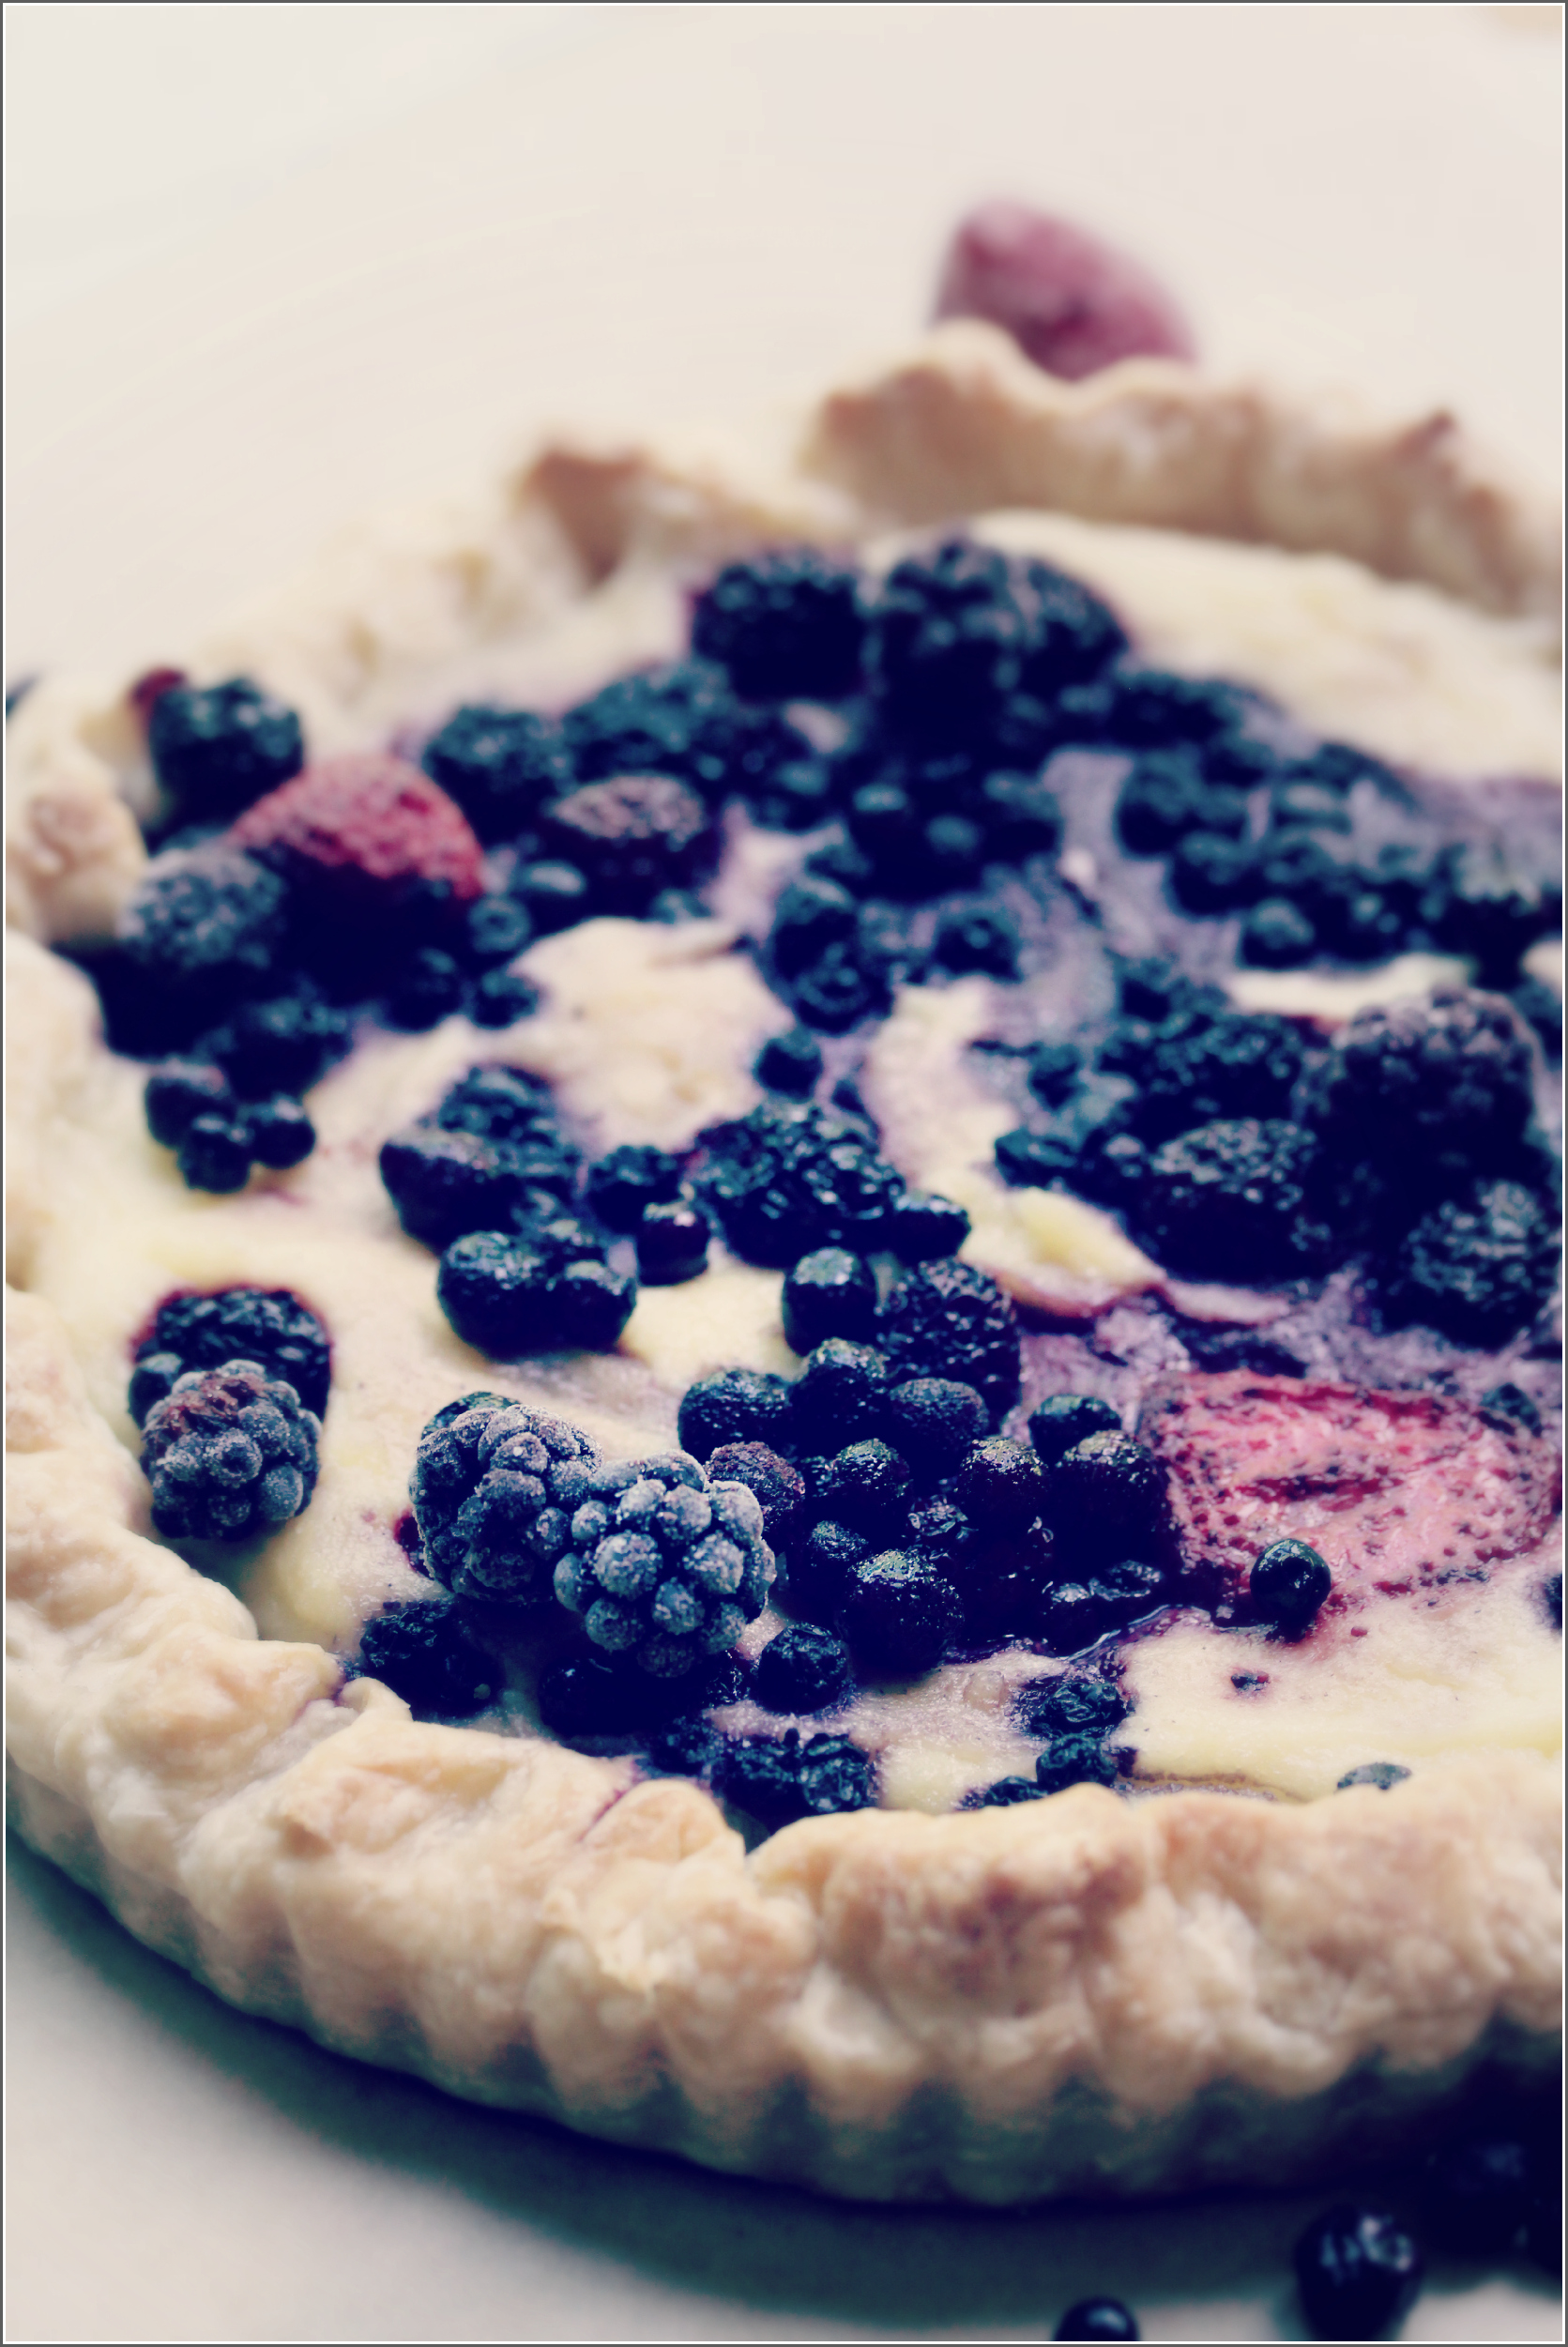 Simple Mixed Berry and Semolina Tart by Dena T Bray©